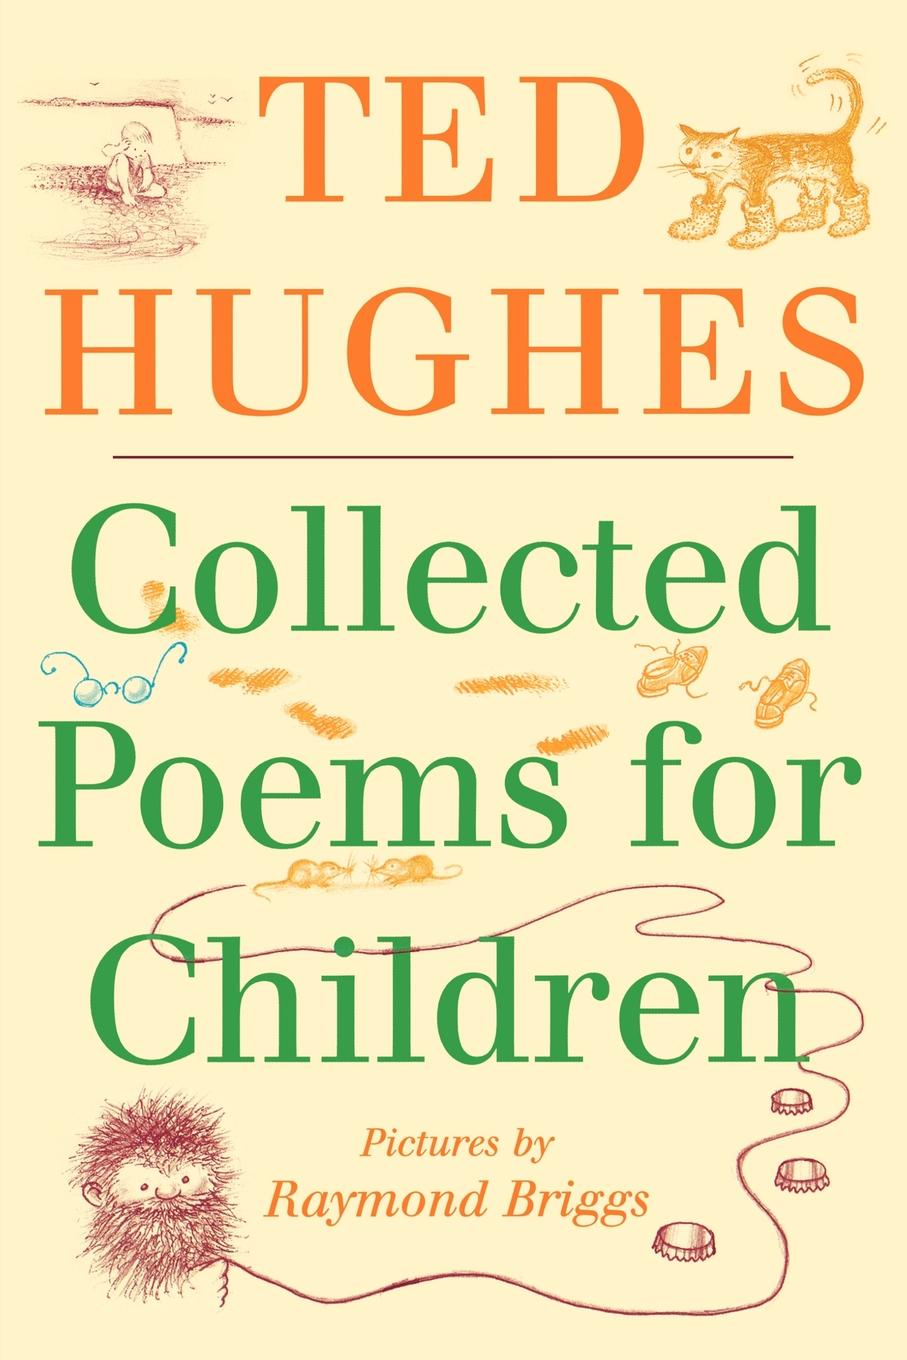 Ted Hughes Collected Poems for Children brian patten collected love poems